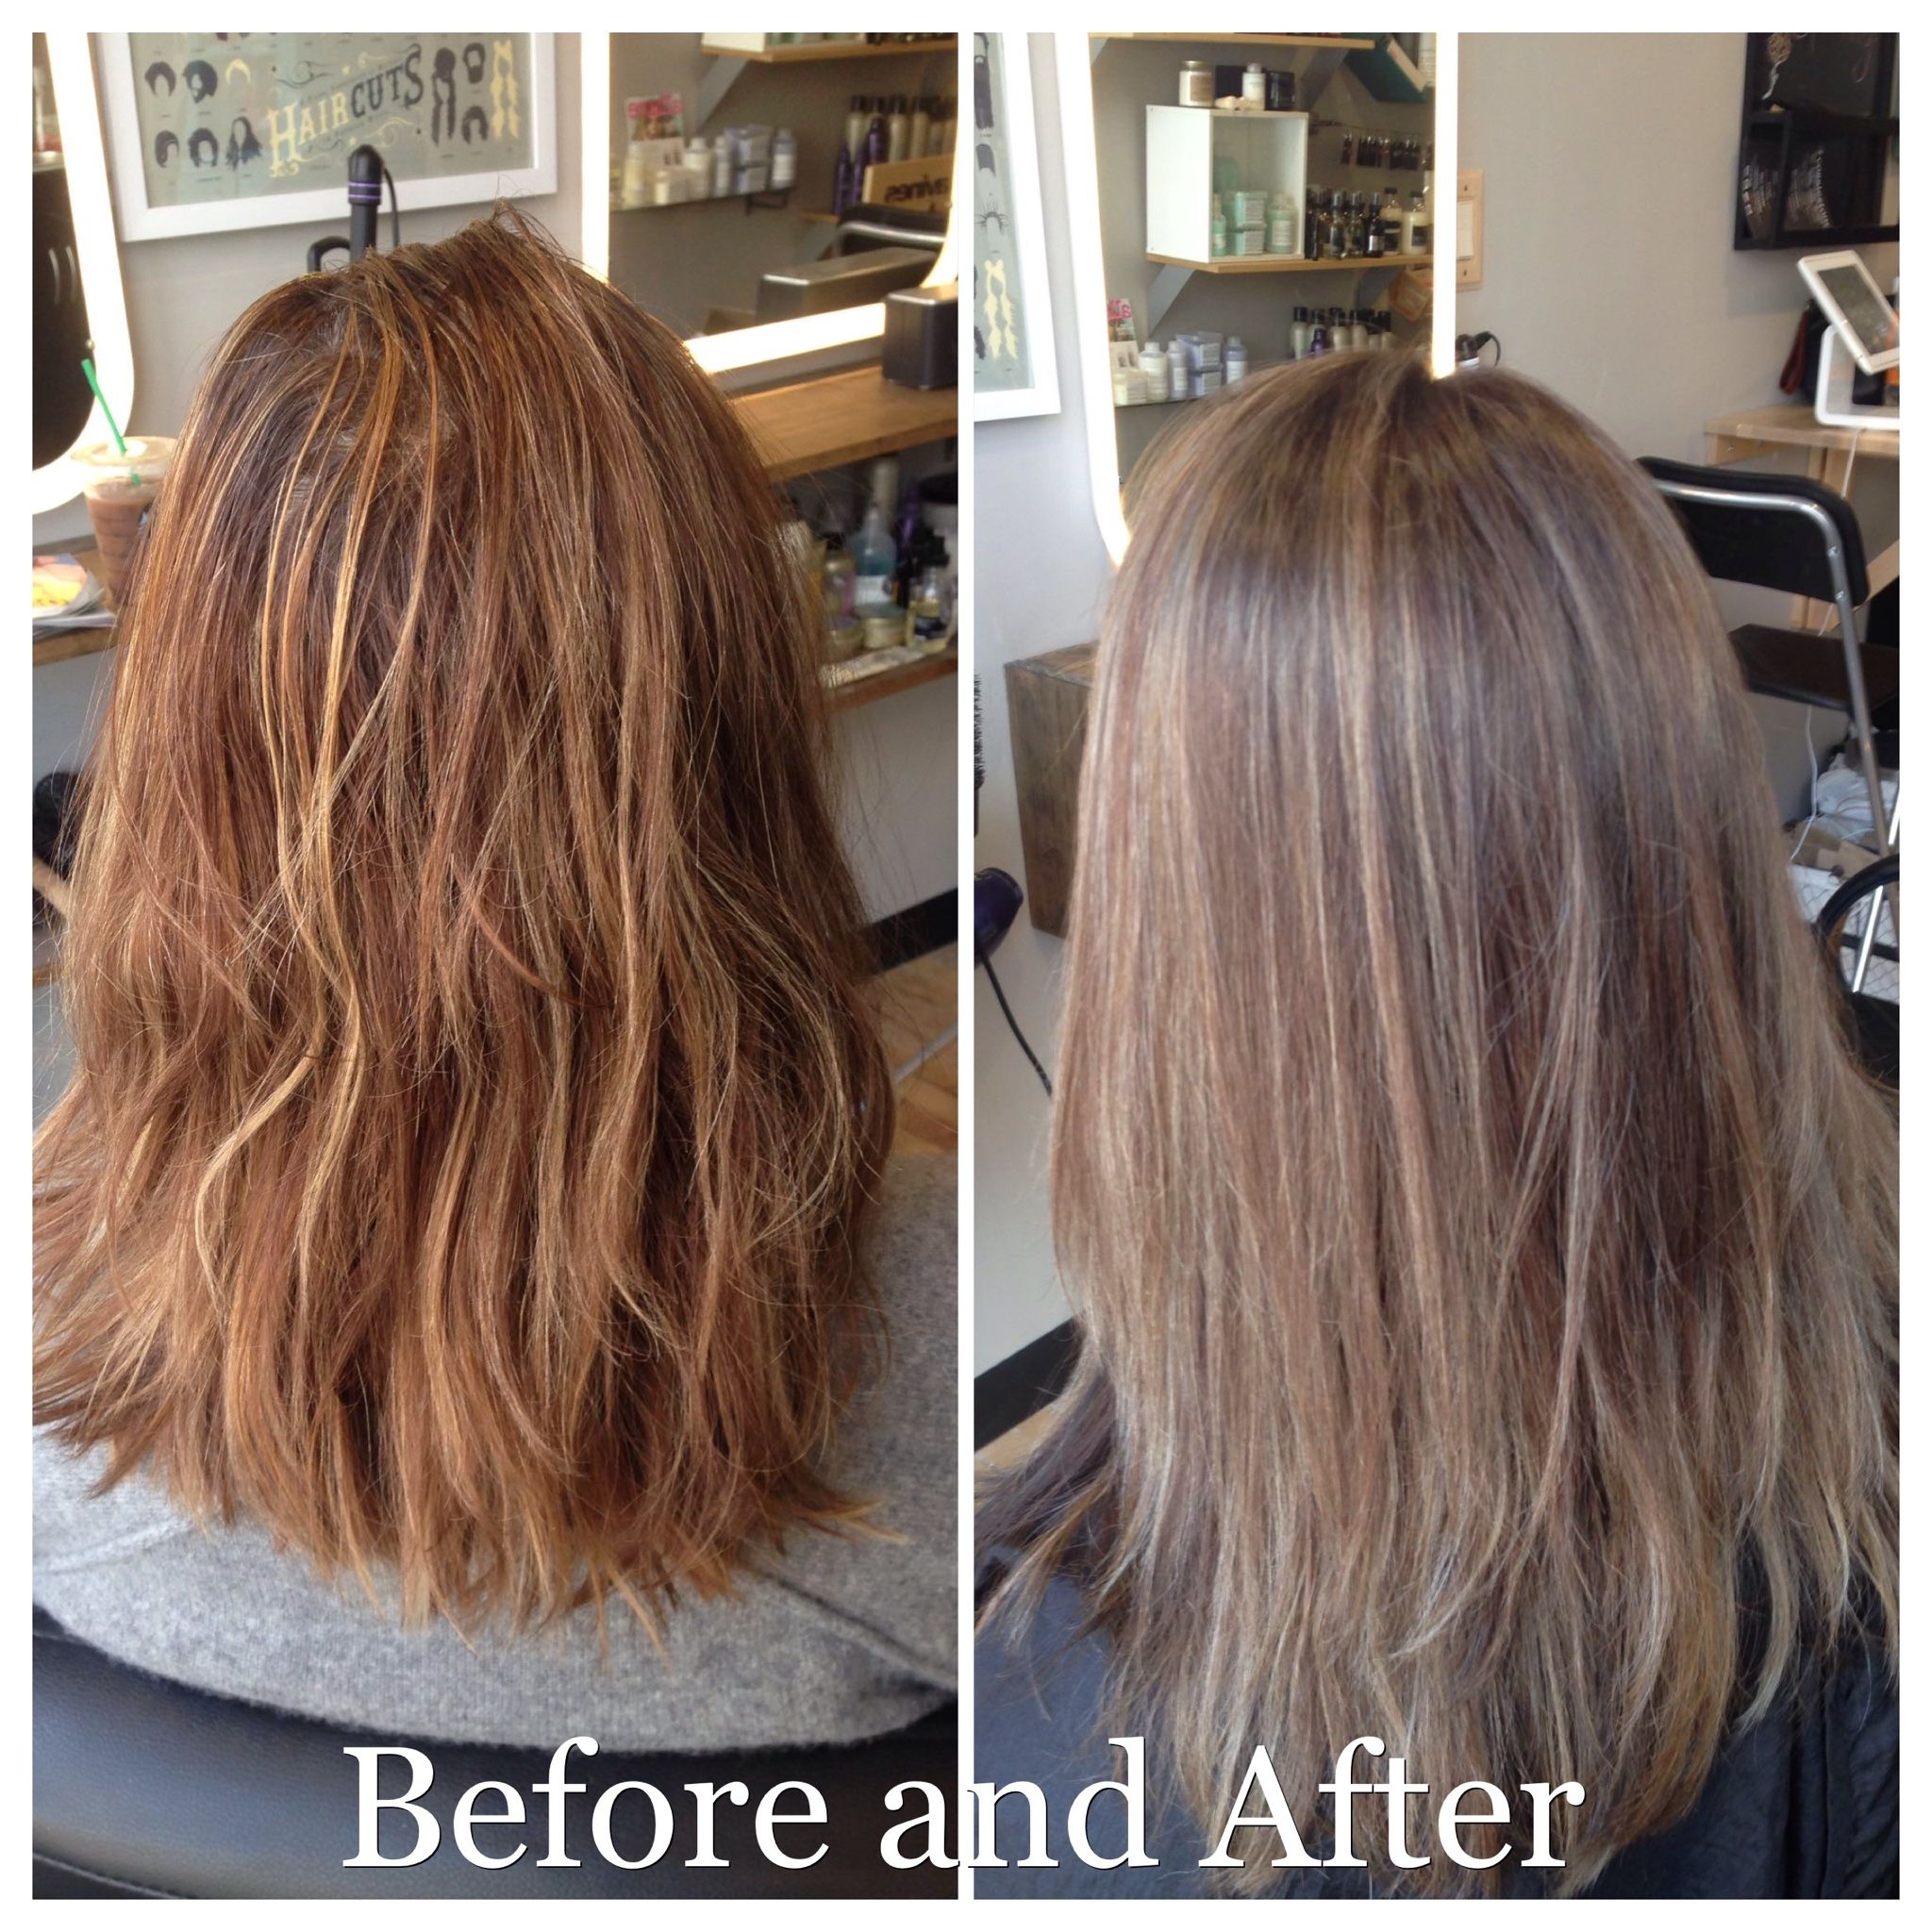 The Difference Of Warm And Brassy Brunette To A Cool And Neutral Brunette With Blonde Highligh Neutral Blonde Blonde Highlights Brunette With Blonde Highlights